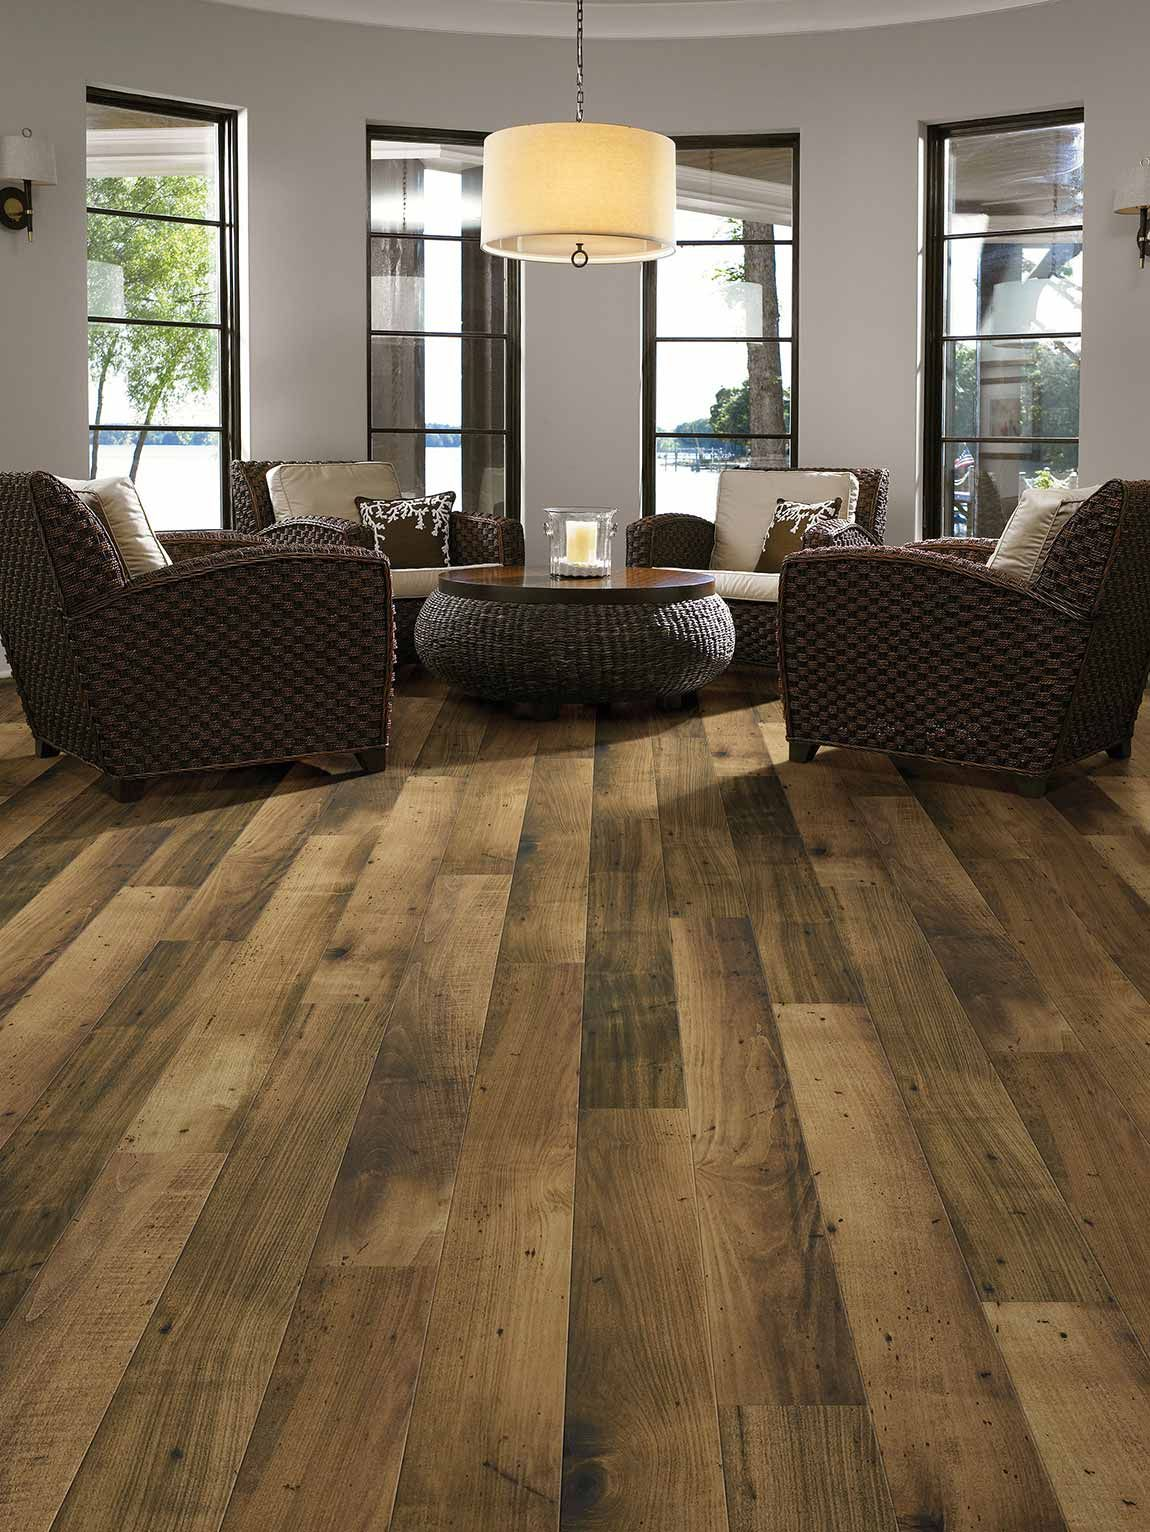 Southern Blue Gum hardwood flooring with Ash treads and